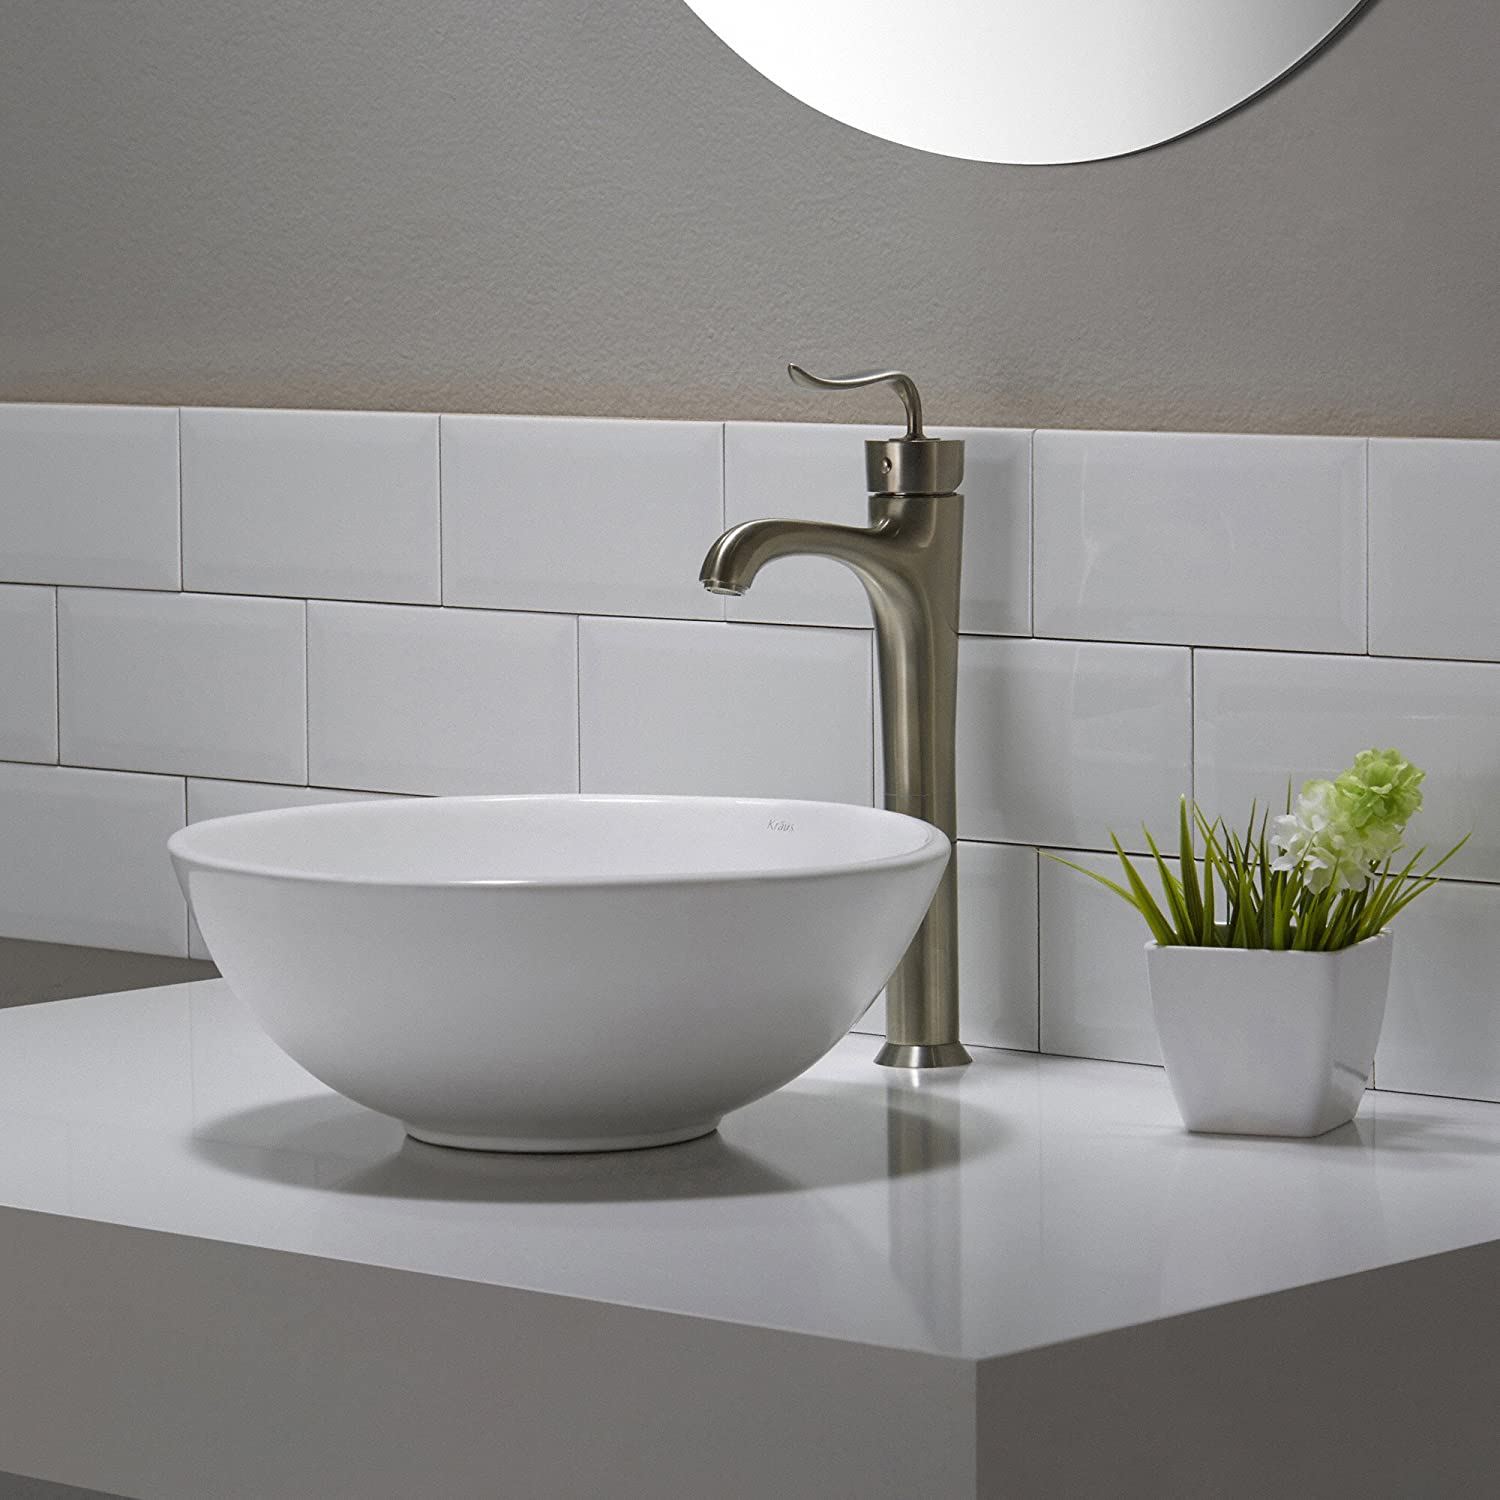 Beau Kraus KCV 341 Elavo White Ceramic Small Round Vessel Bathroom Sink      Amazon.com